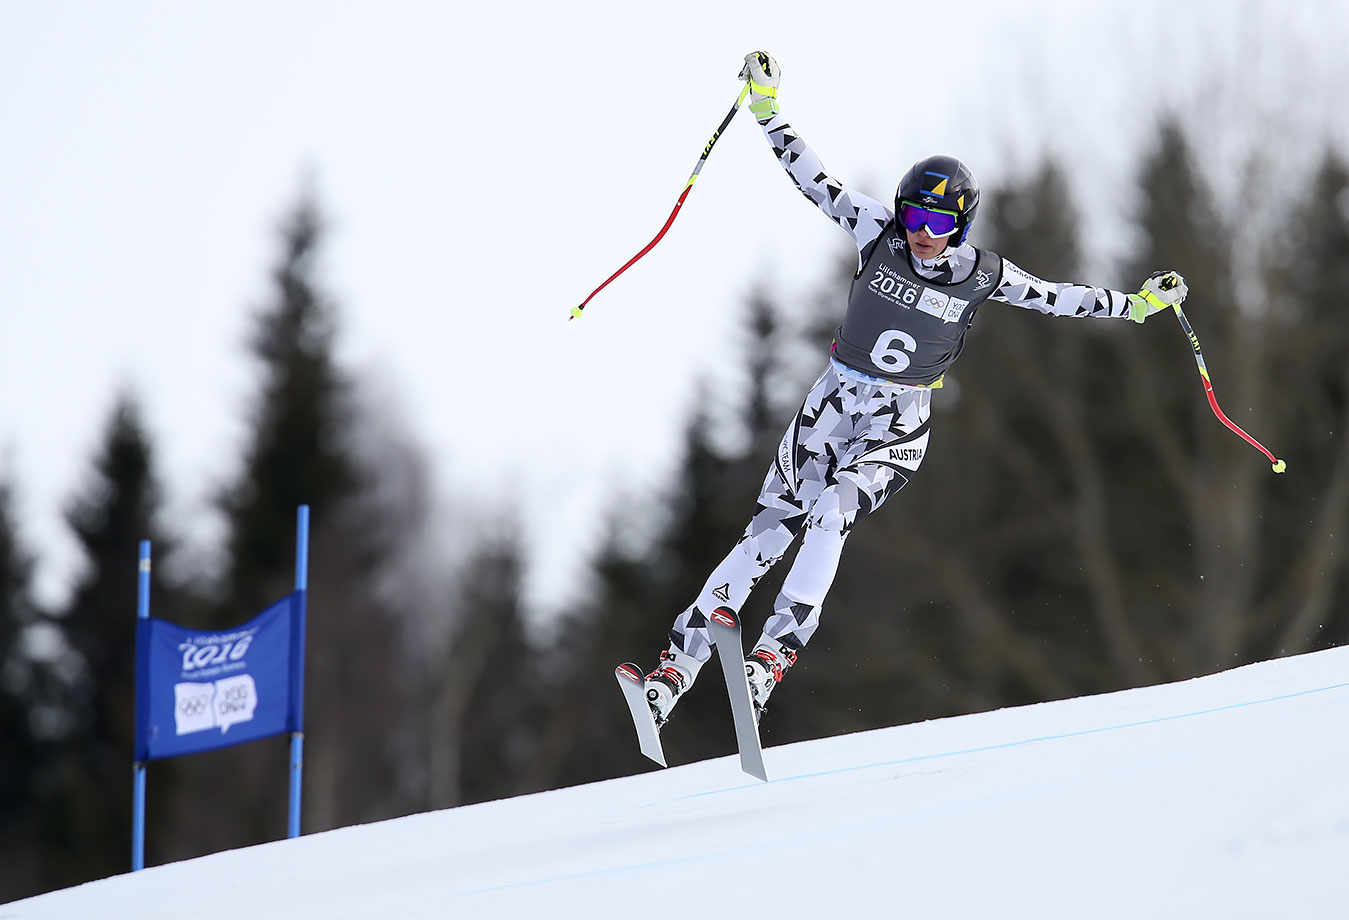 Nadine Fest (AUT) on her way to winning the Alpine Skiing Ladies' Super-G at the Hafjell Olympic Slope on Feb. 13, 2016 during the Winter Youth Olympic Games in Lillehammer, Norway.